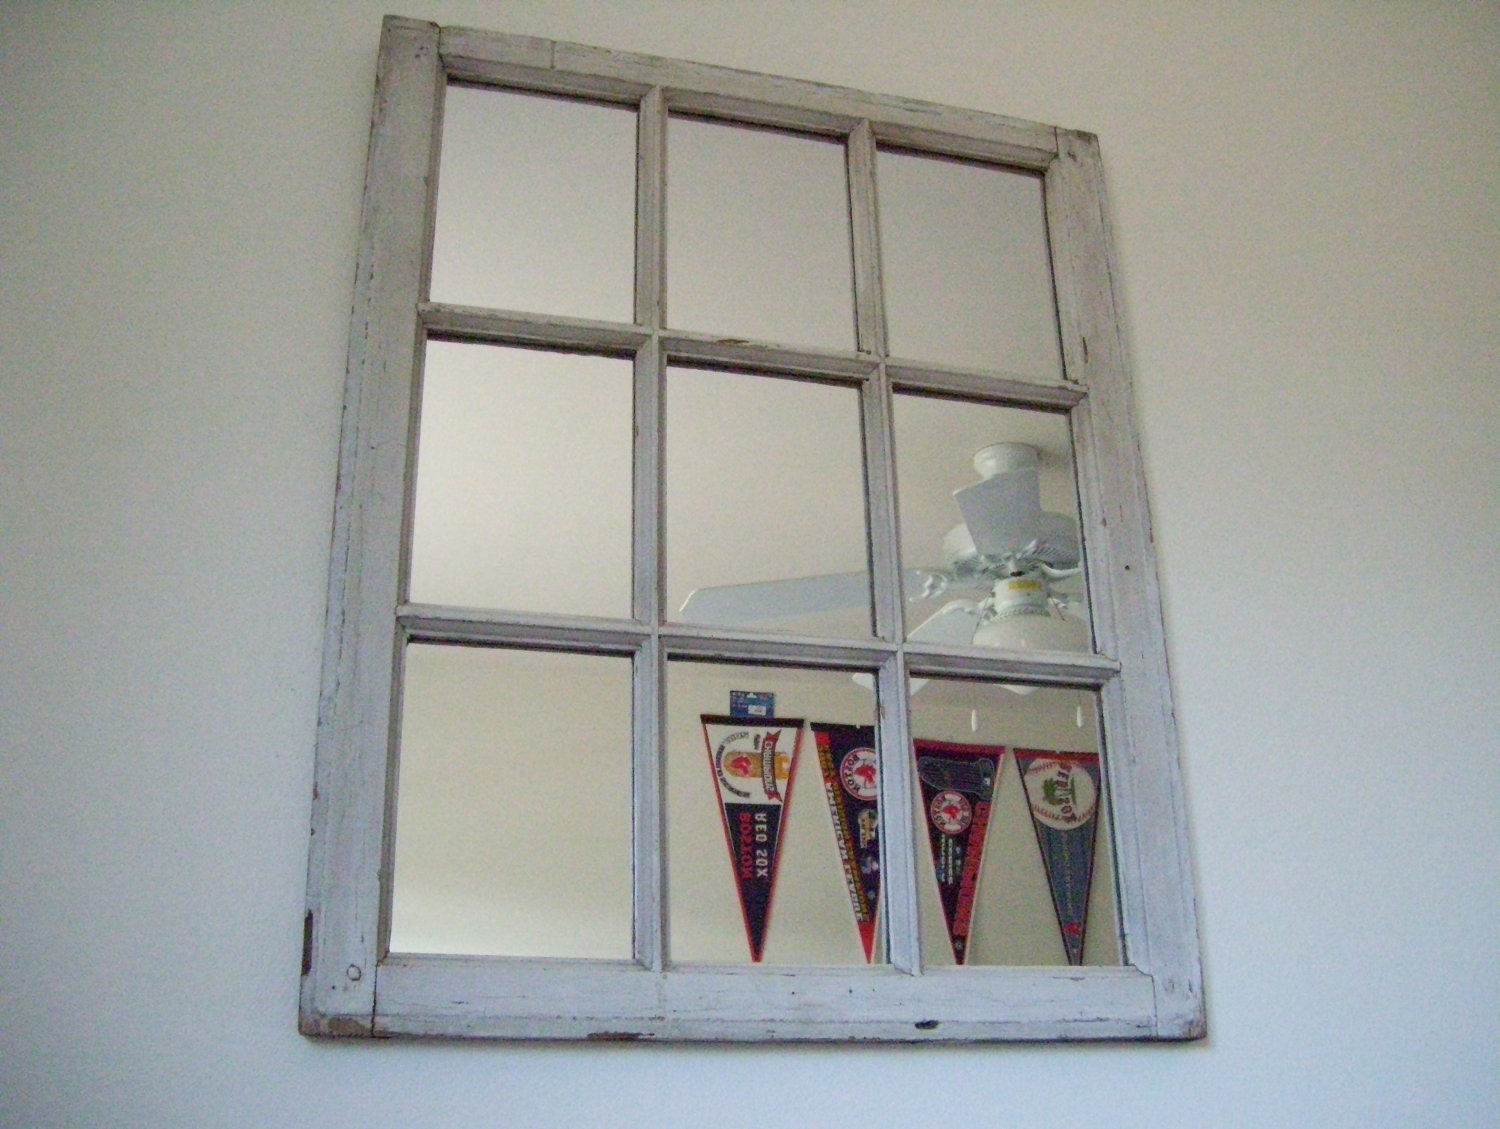 Decorative Rustic White 9 Pane Window Frame Mirror